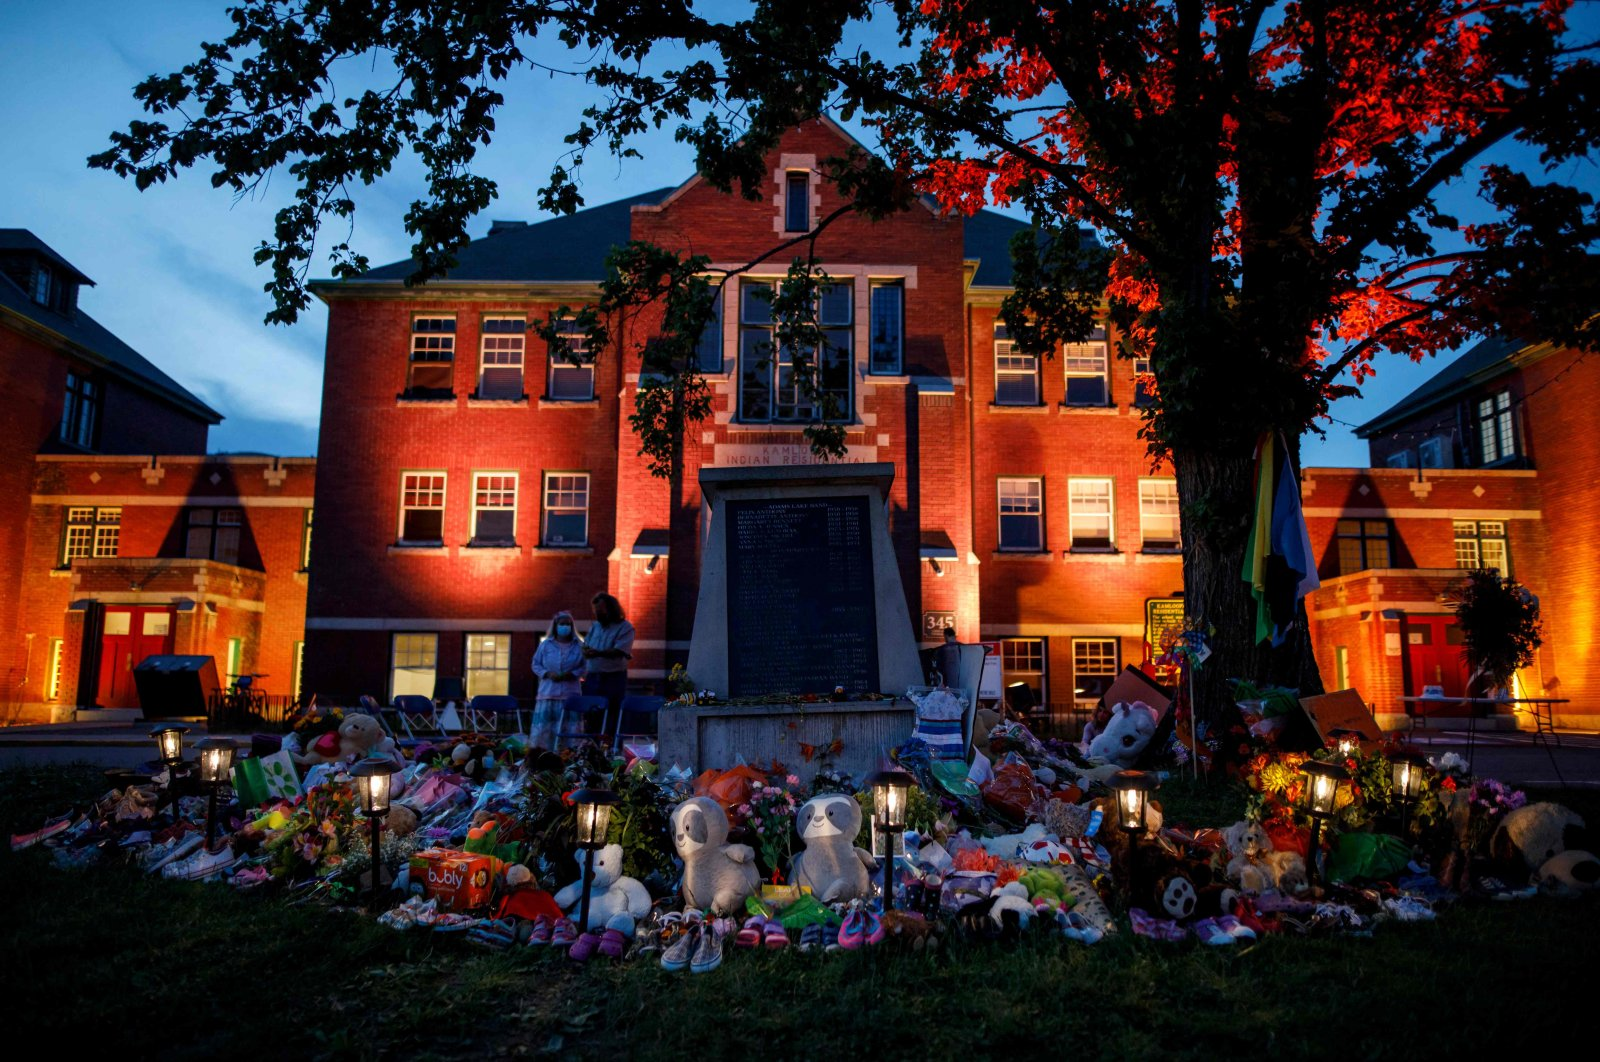 A makeshift memorial to honor the 215 children whose remains were discovered buried near the facility sits in front of the former Kamloops Indian Residential School in Kamloops, British Columbia, Canada, June 2, 2021. (AFP Photo)